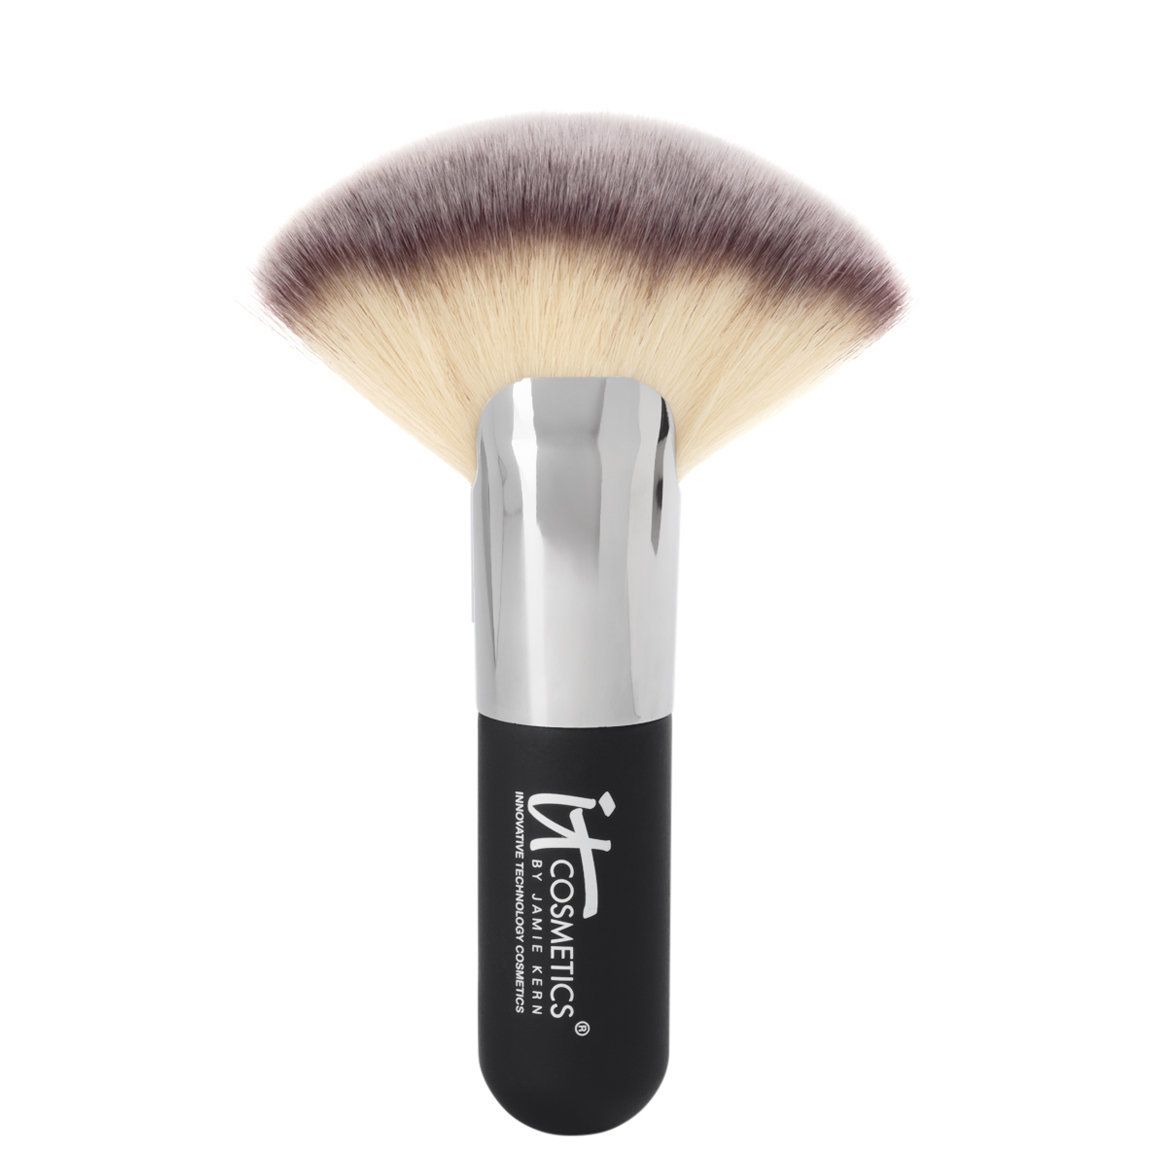 IT Cosmetics  Heavenly Luxe Mega Fan #9 product smear.